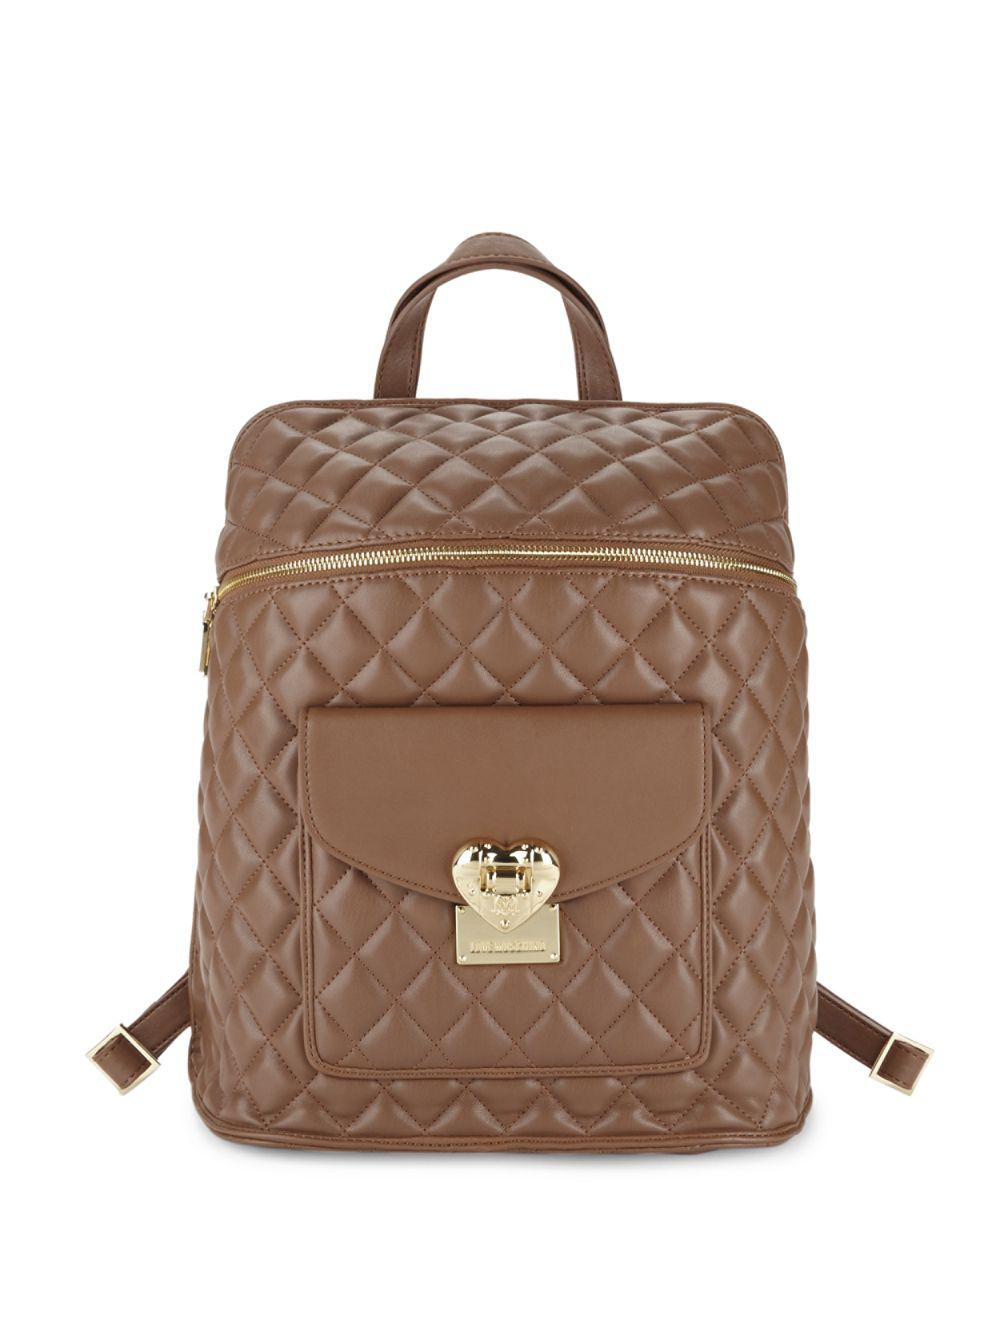 Lyst - Love moschino Quilted Faux Leather Backpack in Brown : quilted faux leather backpack - Adamdwight.com